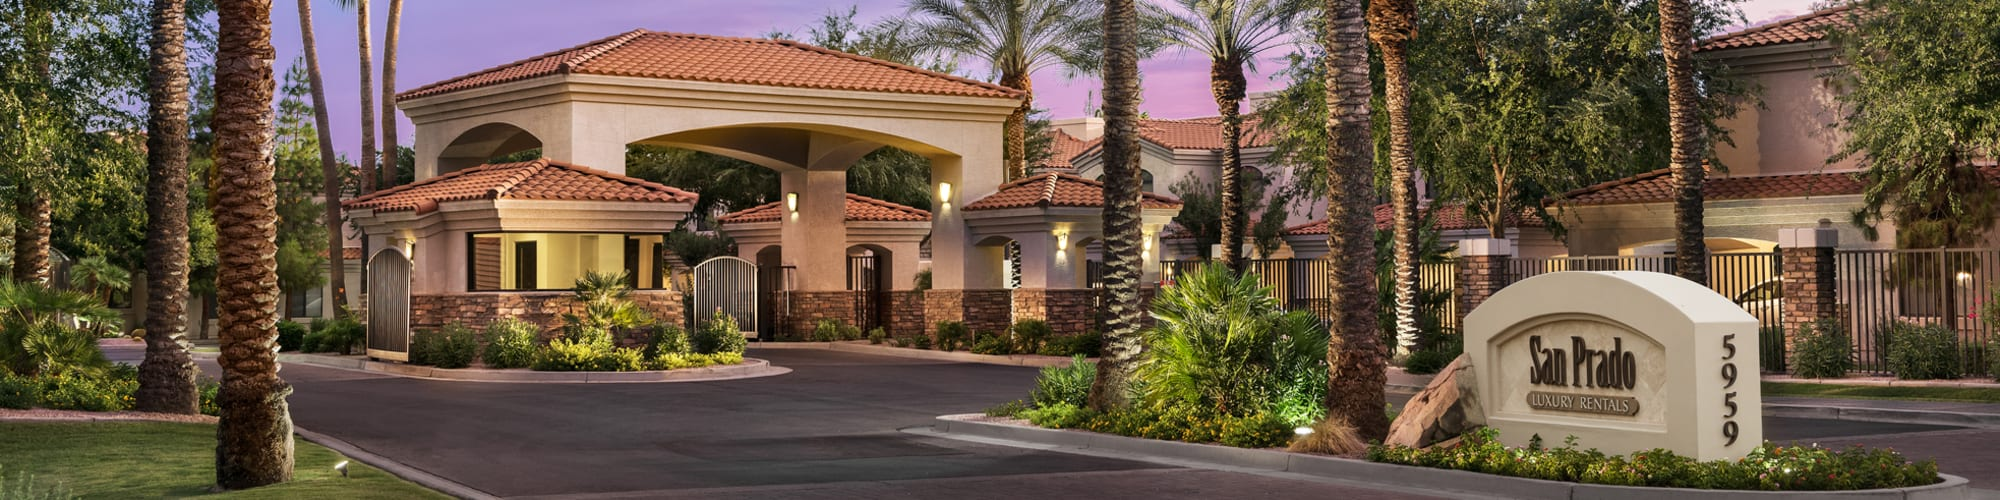 Schedule a tour of San Prado in Glendale, Arizona